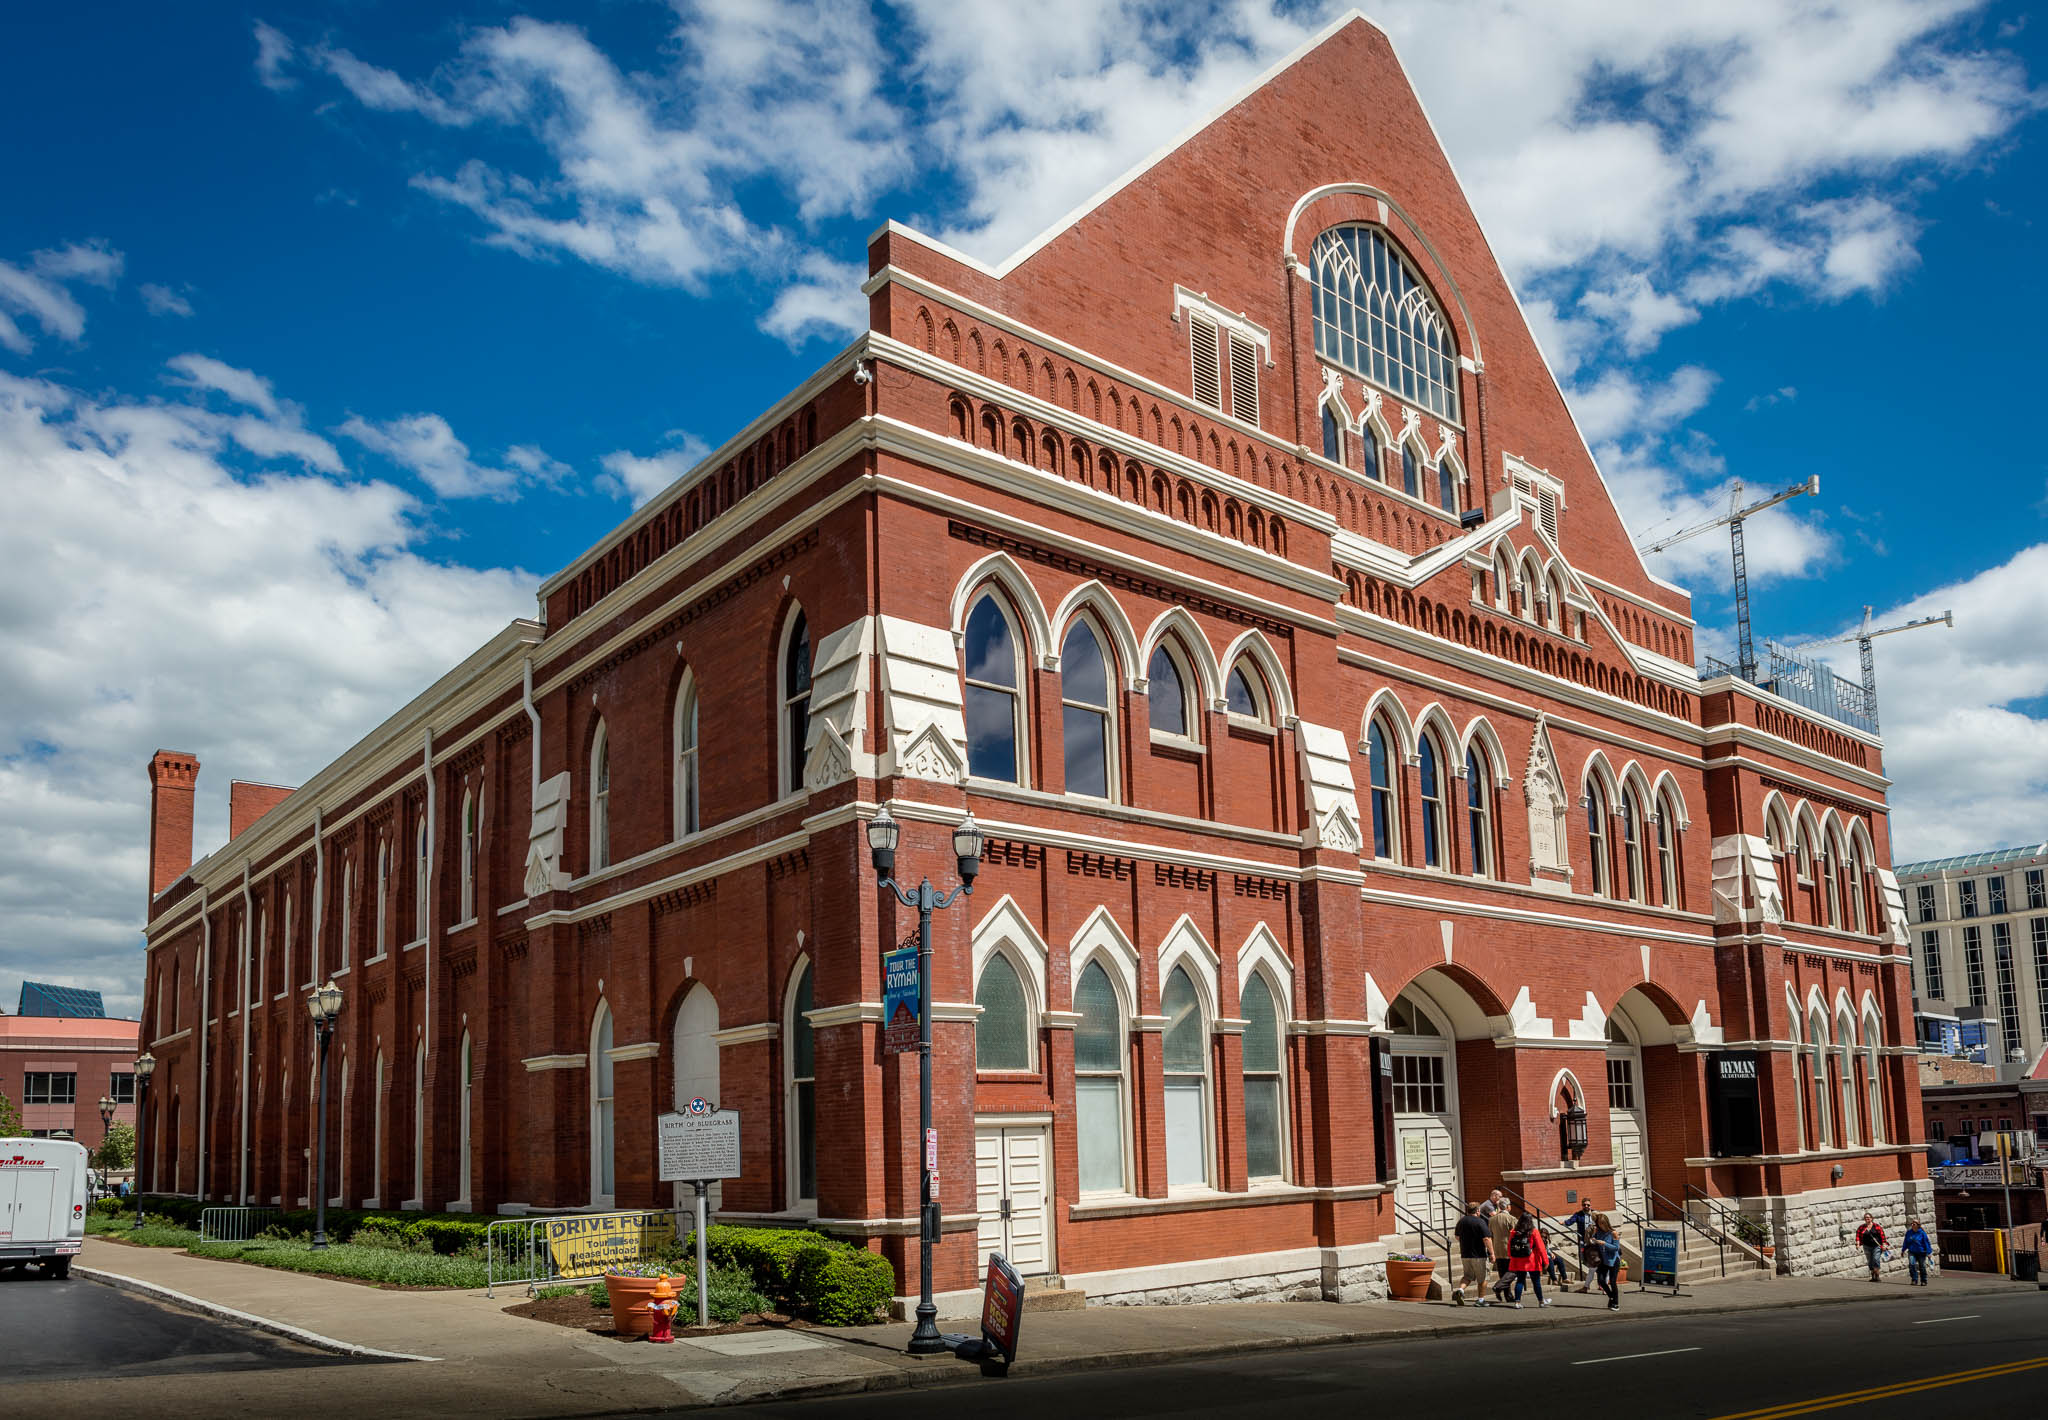 The Ryman Auditorium in Nashville